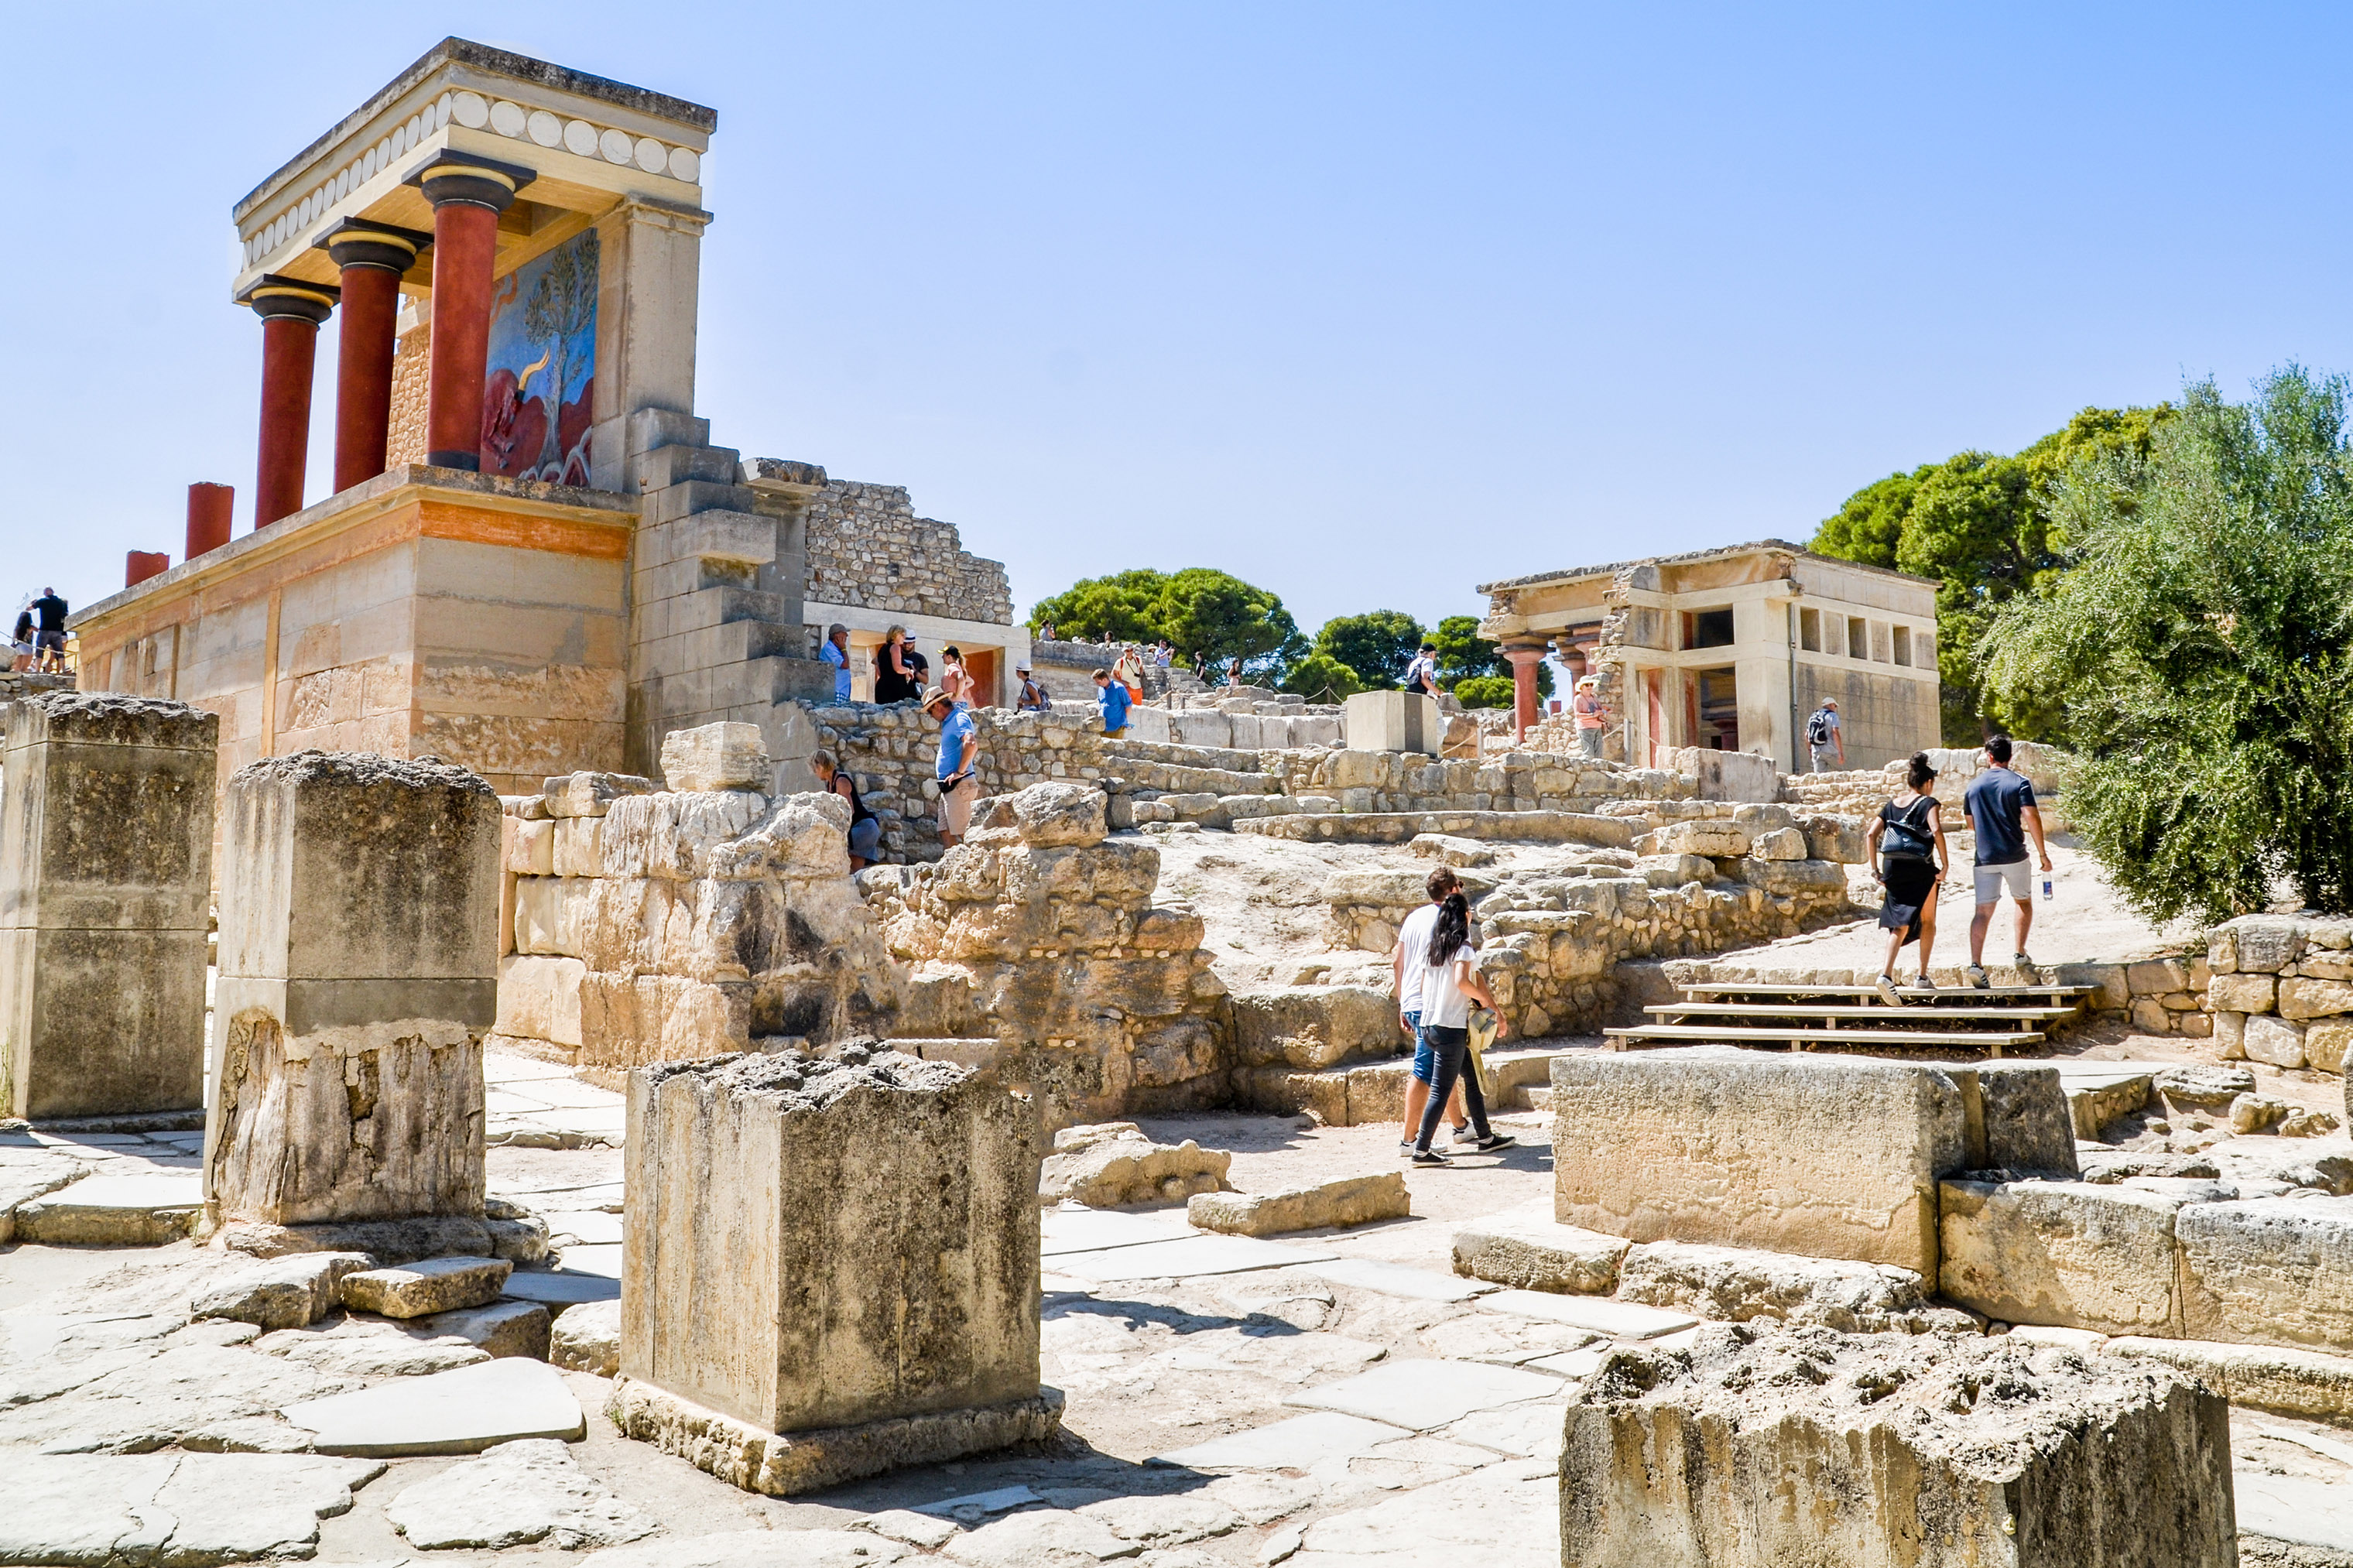 The excavated site of Knossos is one of Crete's most popular attractions.